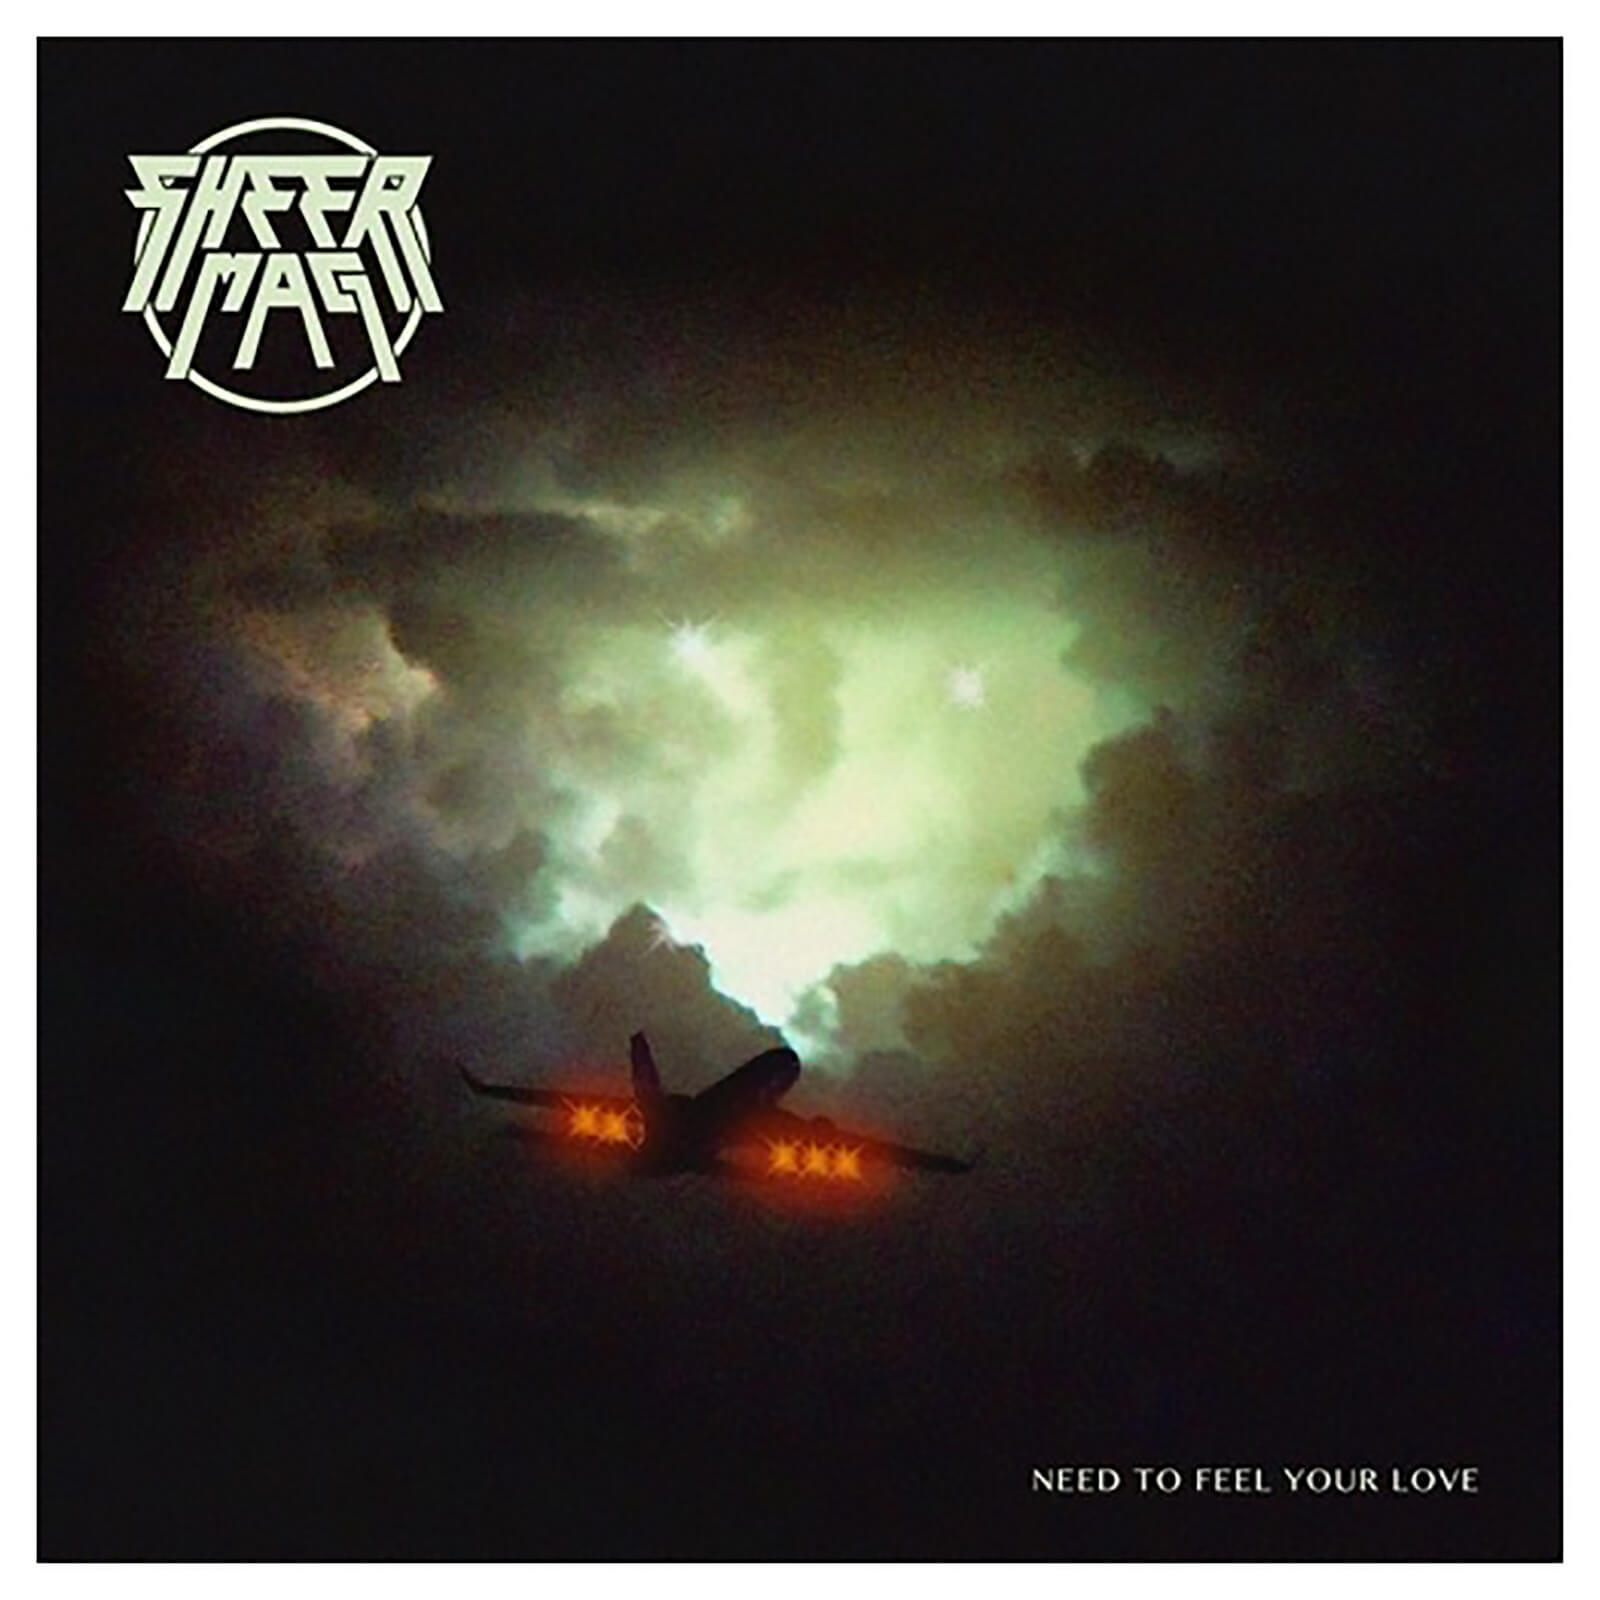 Sheer Mag - Need To Feel Your Love - Vinyl